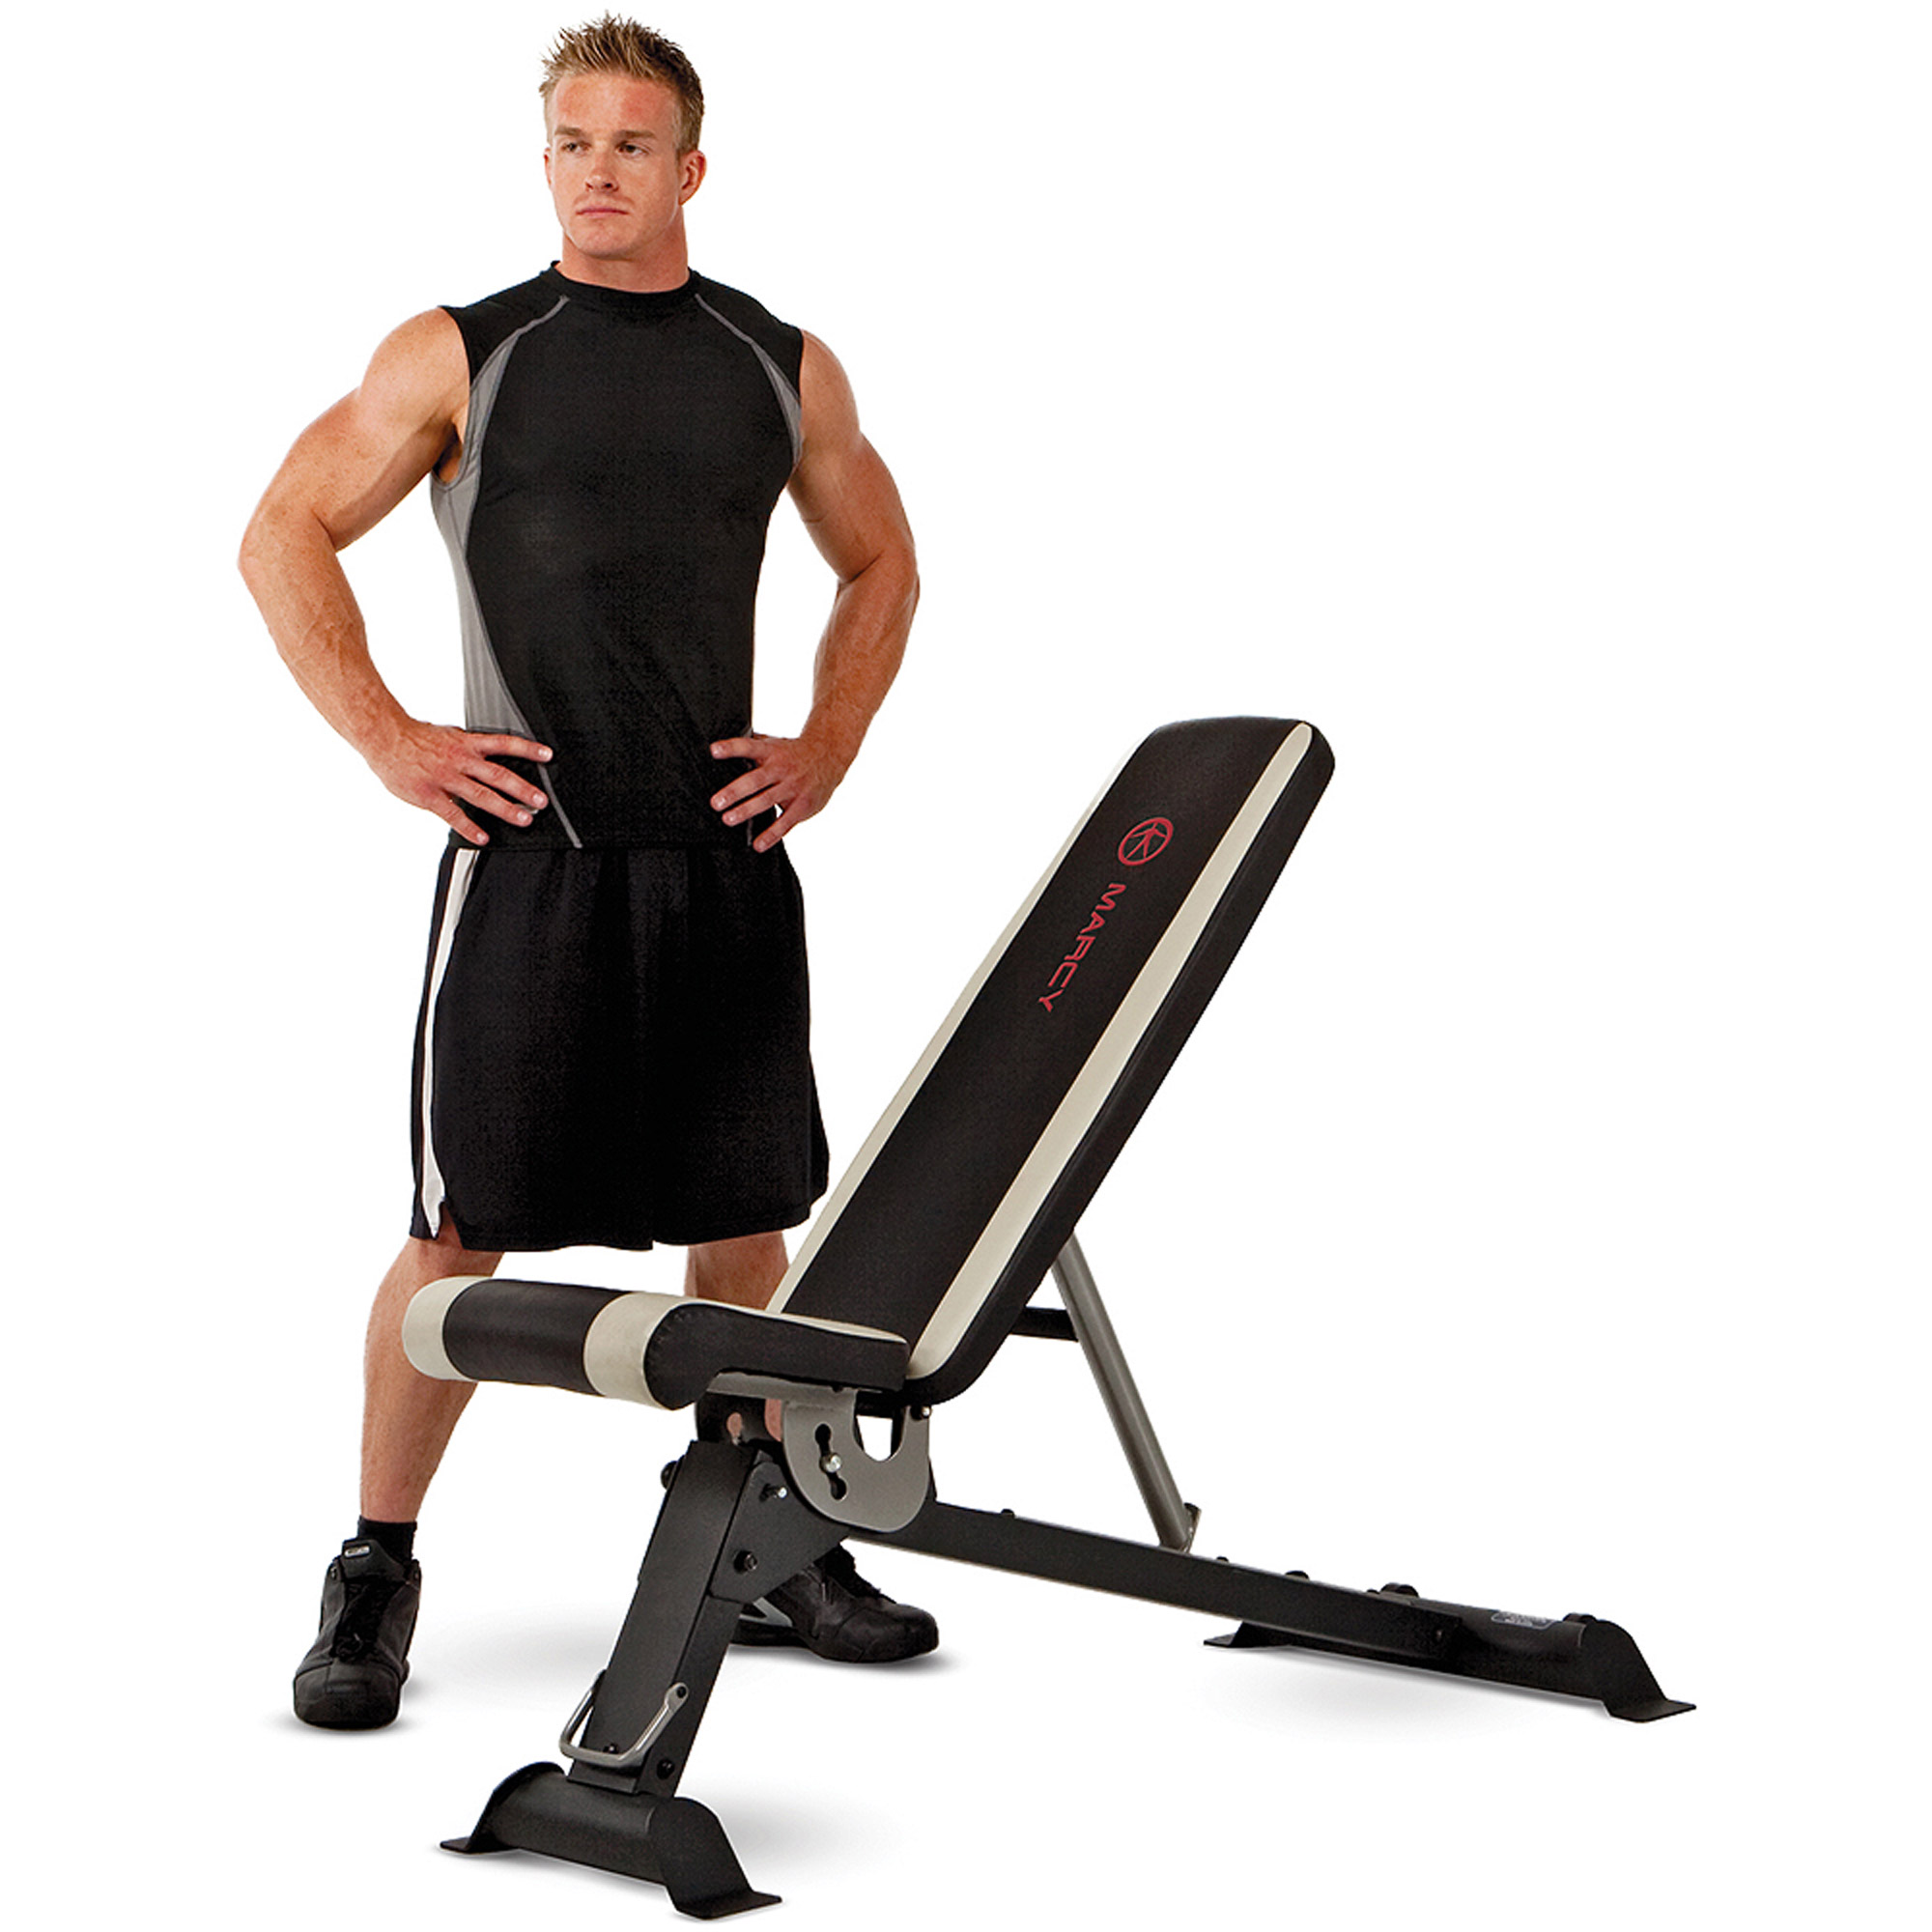 Marcy 6-Position Flat/Incline/Decline Utility Bench: SB-670